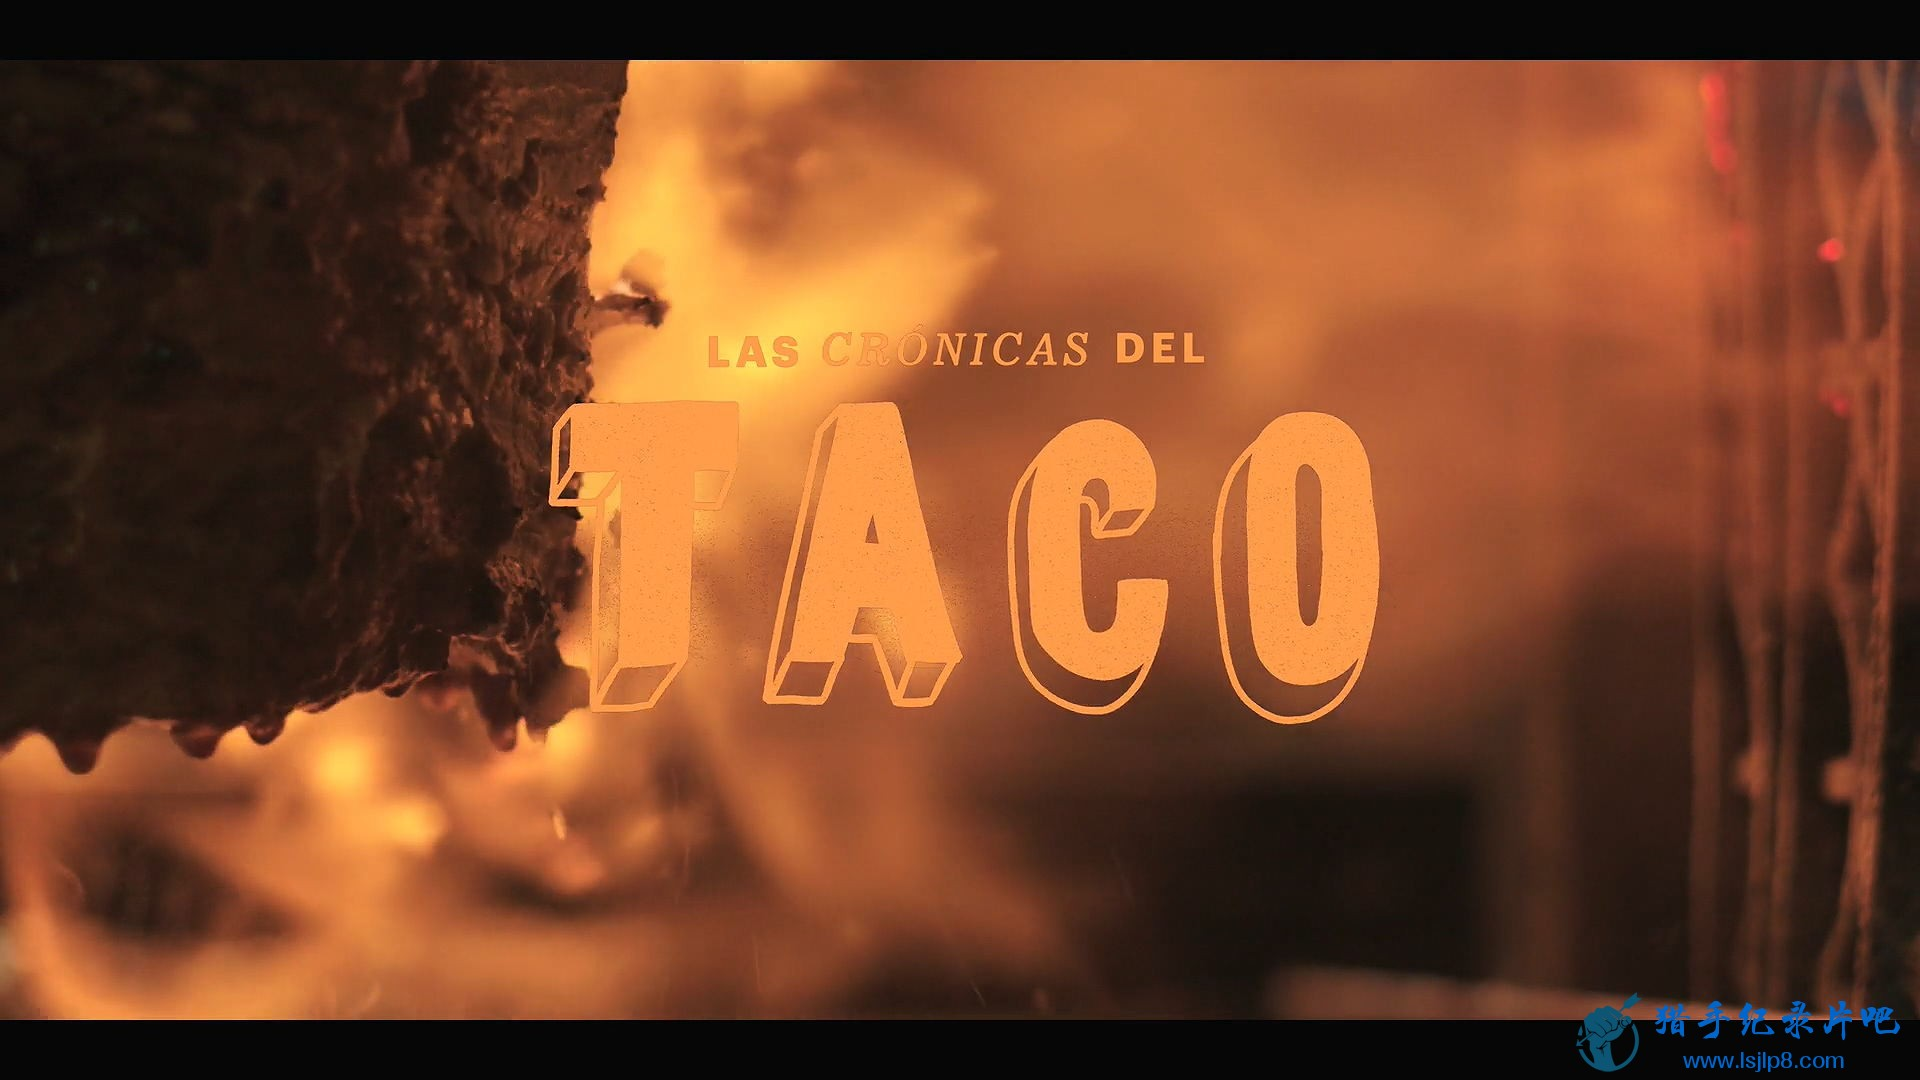 Taco.Chronicles.S01E01.1080p.NF.WEB-DL.DDP5.1.x264-K4DL.mkv_20200916_123826.491_看图王.jpg